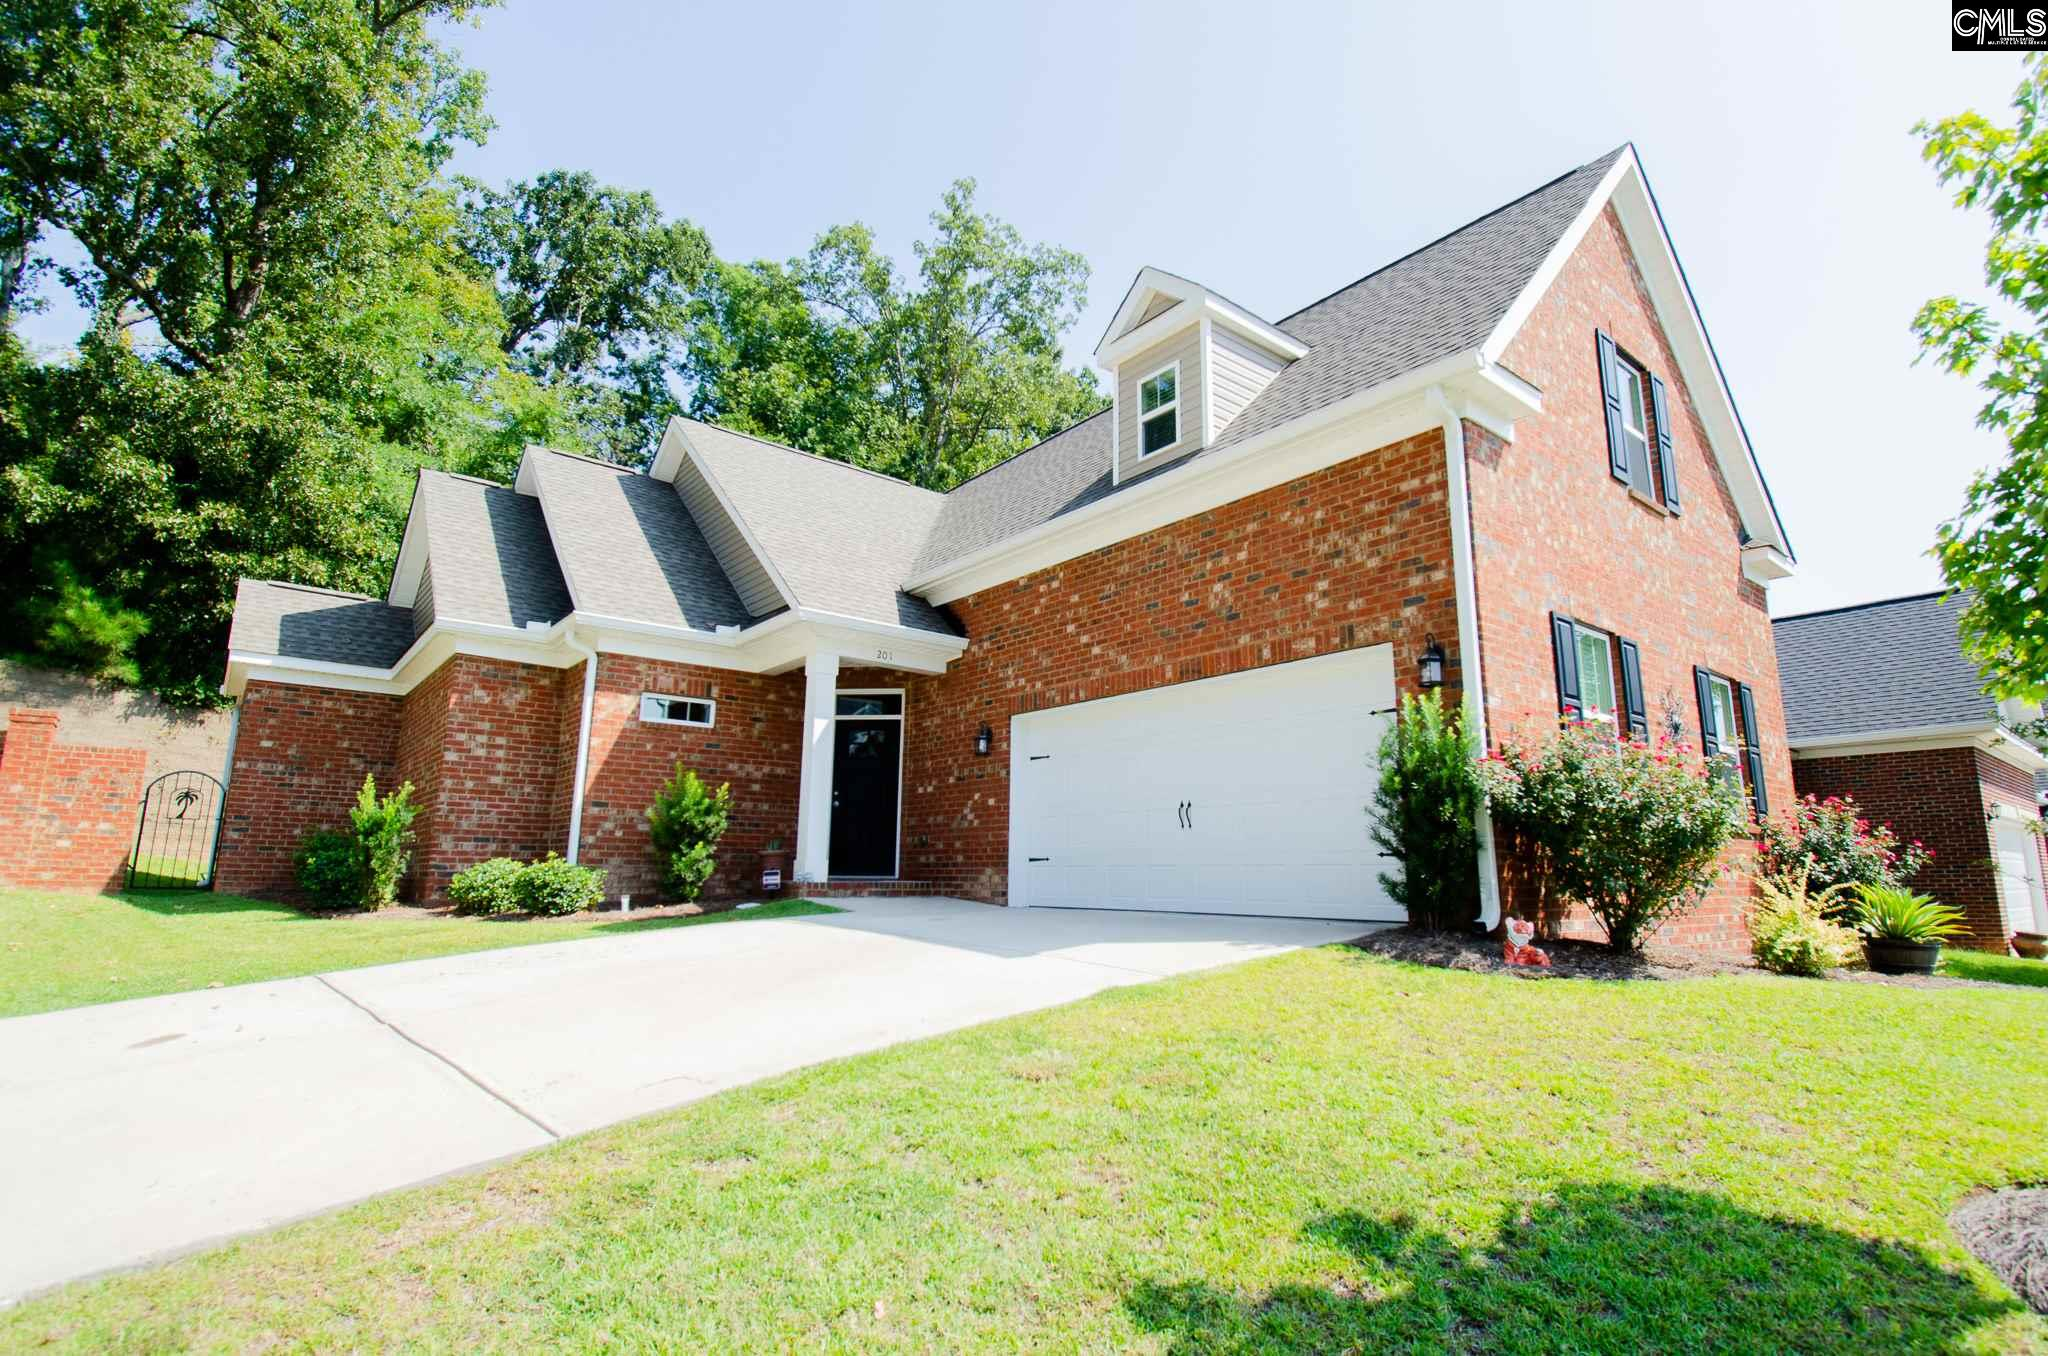 201 Palm Hill Columbia, SC 29212